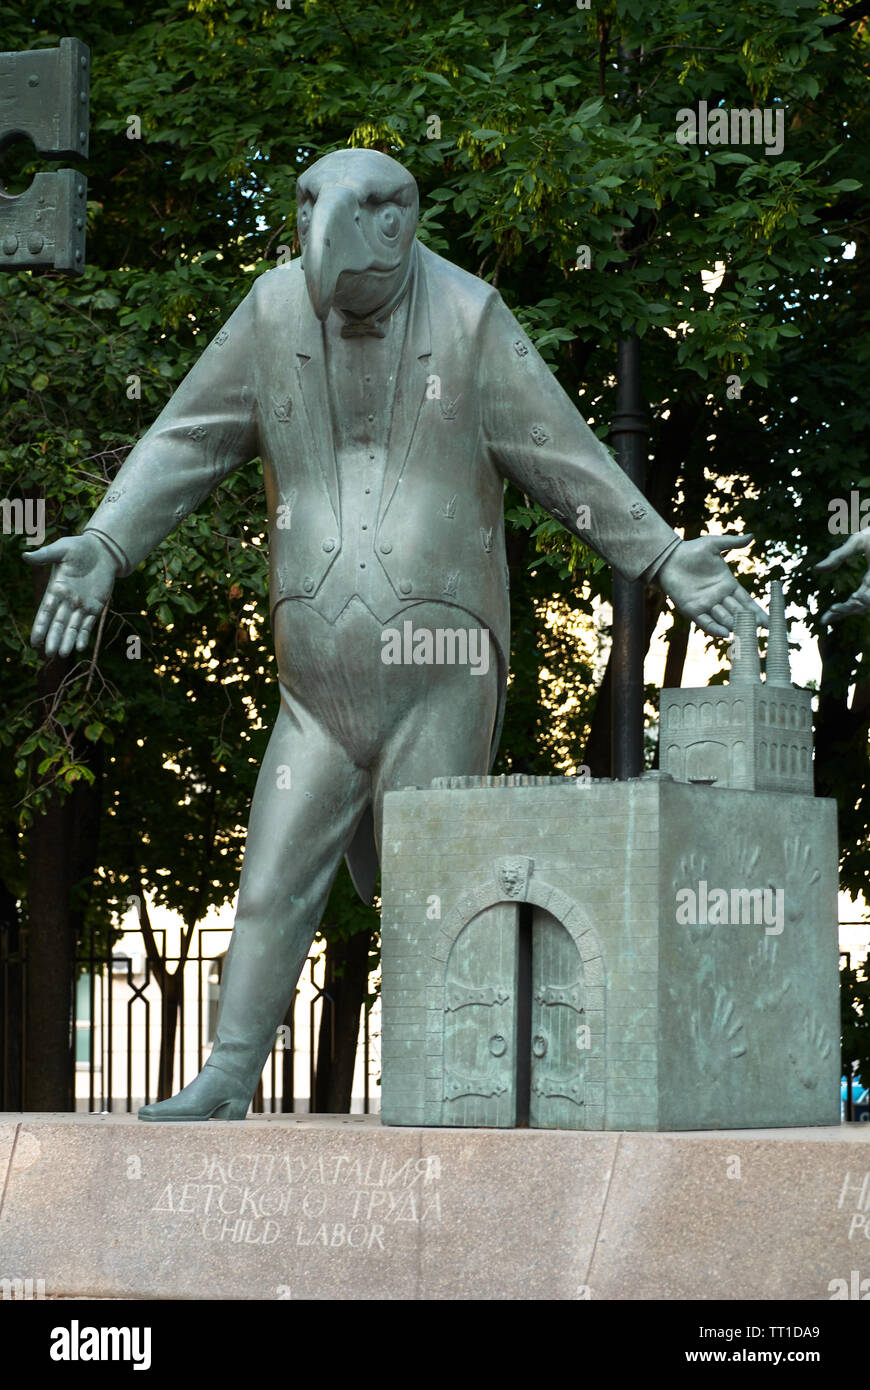 Moscow, Russia - July 24, 2008: Children Are the Victims of Adult Vices is a group of bronze sculptures created by Russian artist Mihail Chemiakin. Th Stock Photo